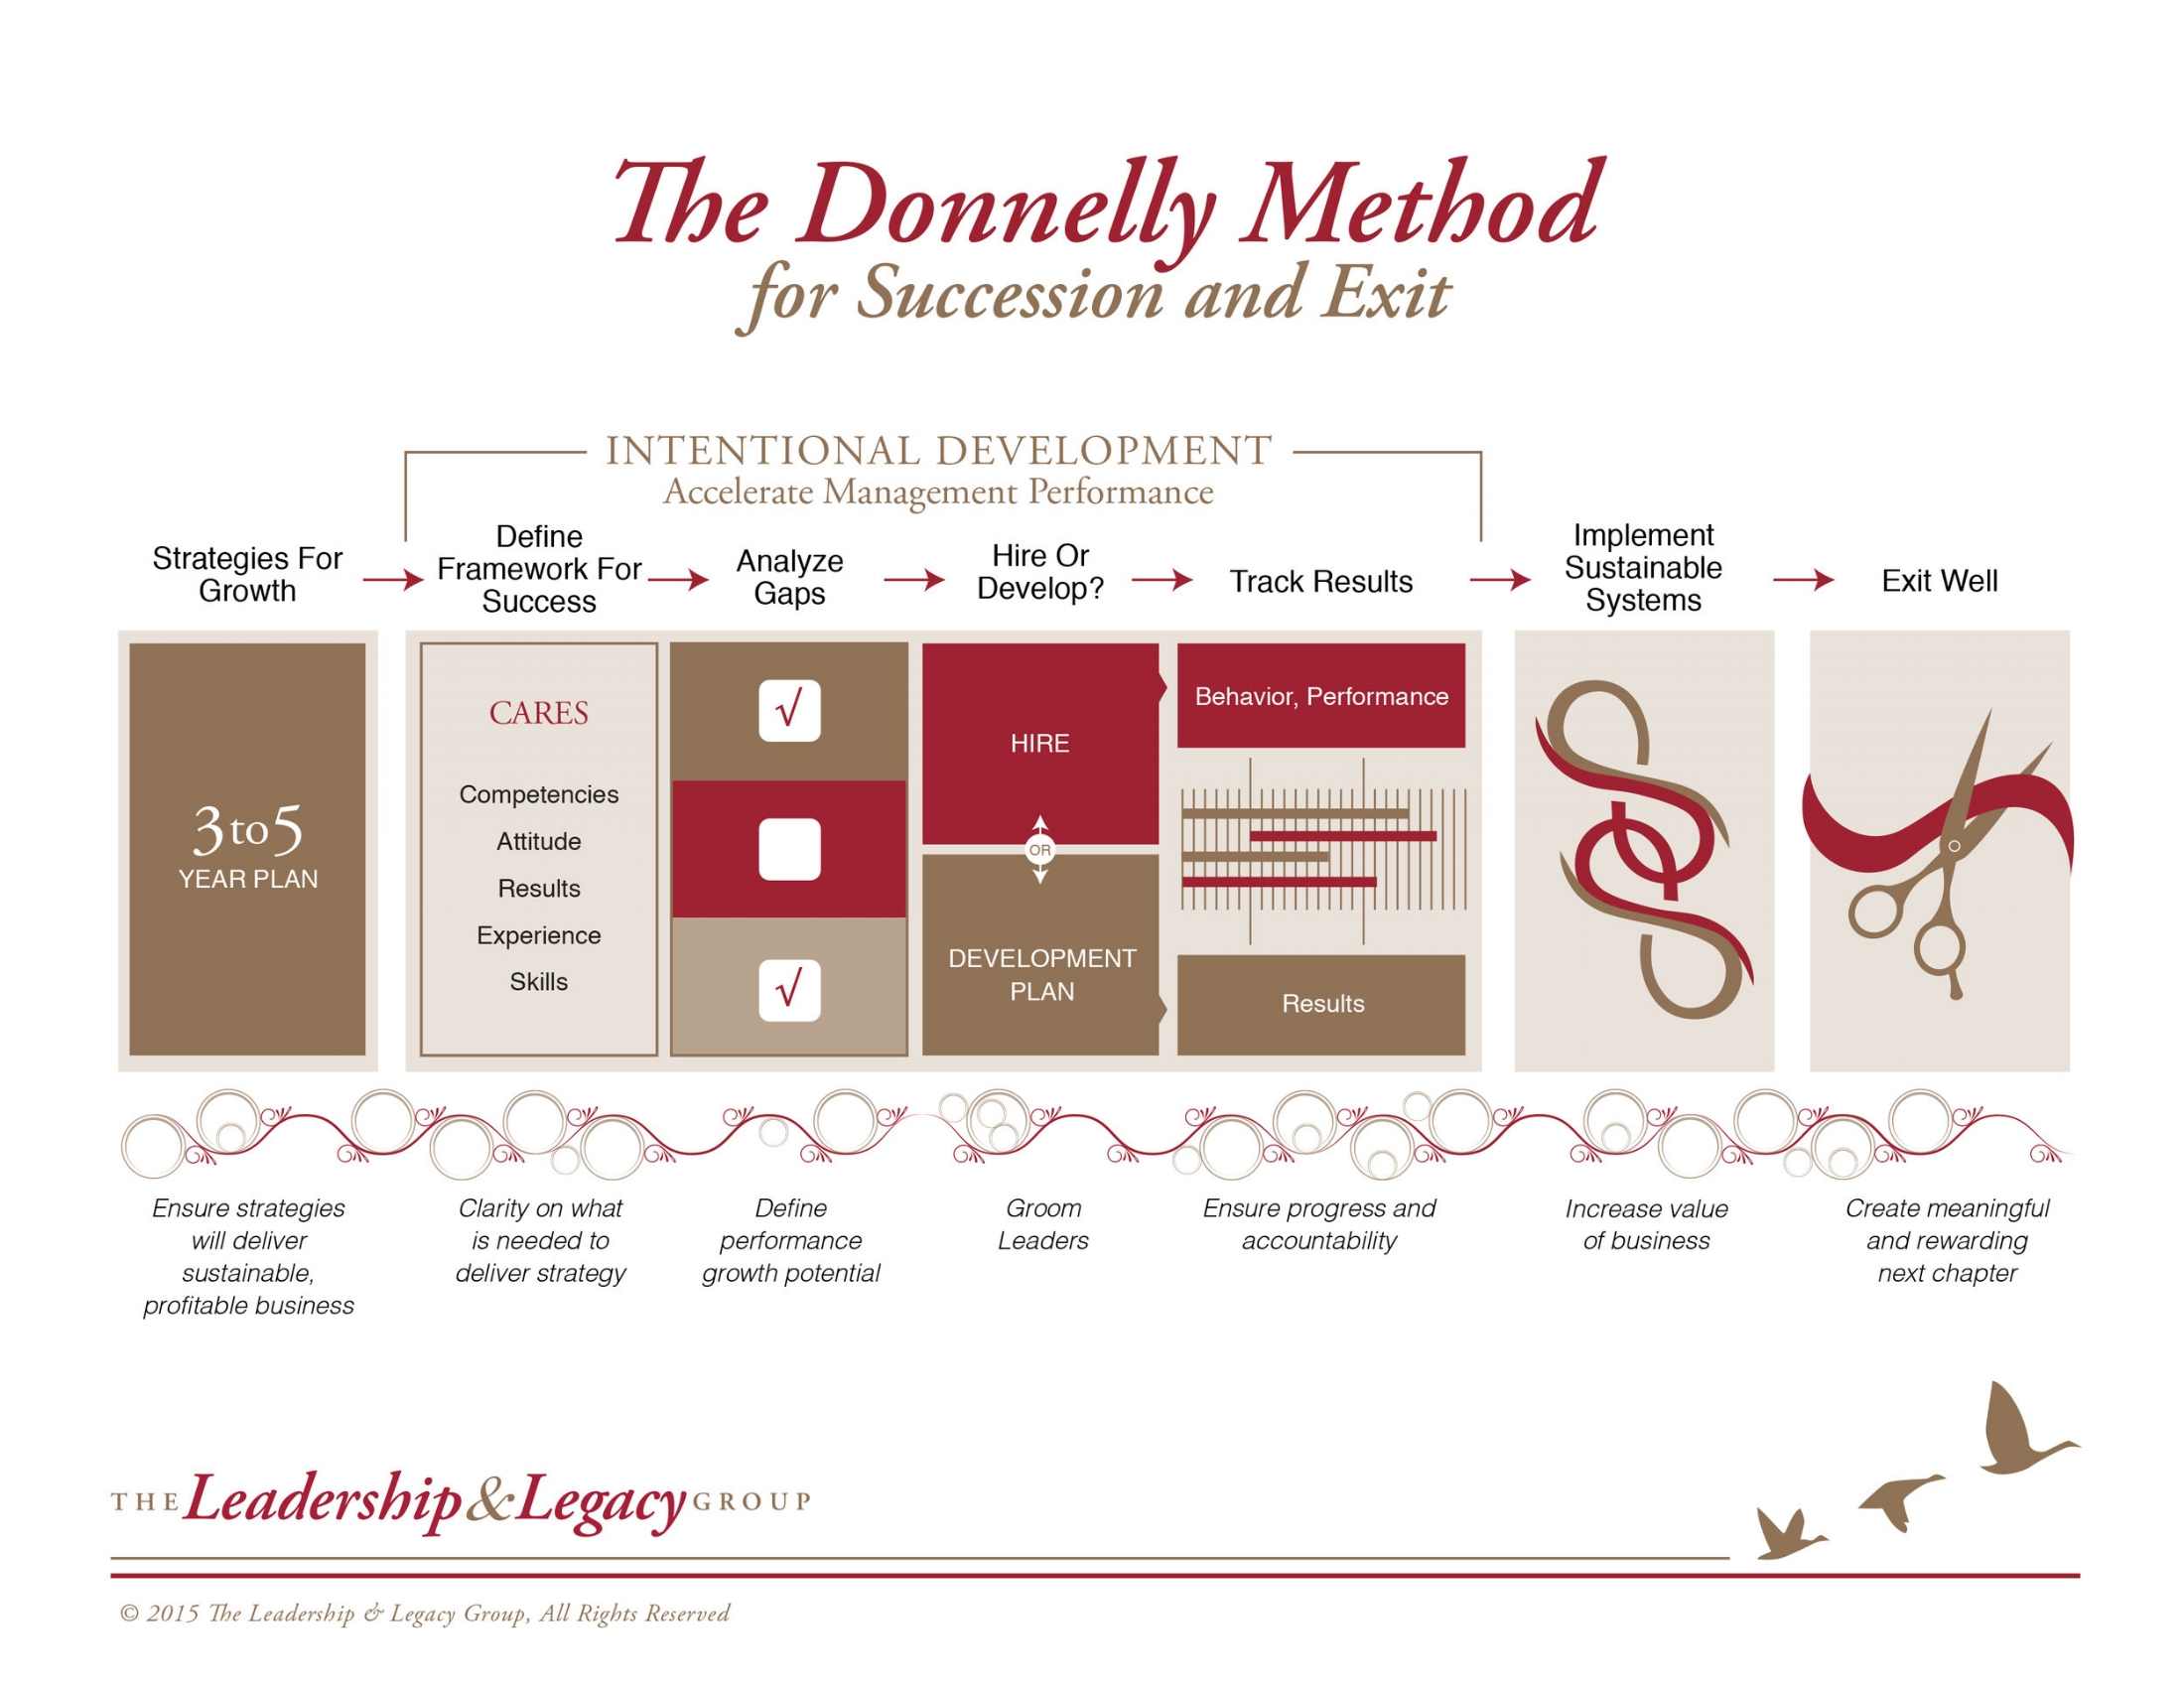 The Donnelly Method for Succession and Exit